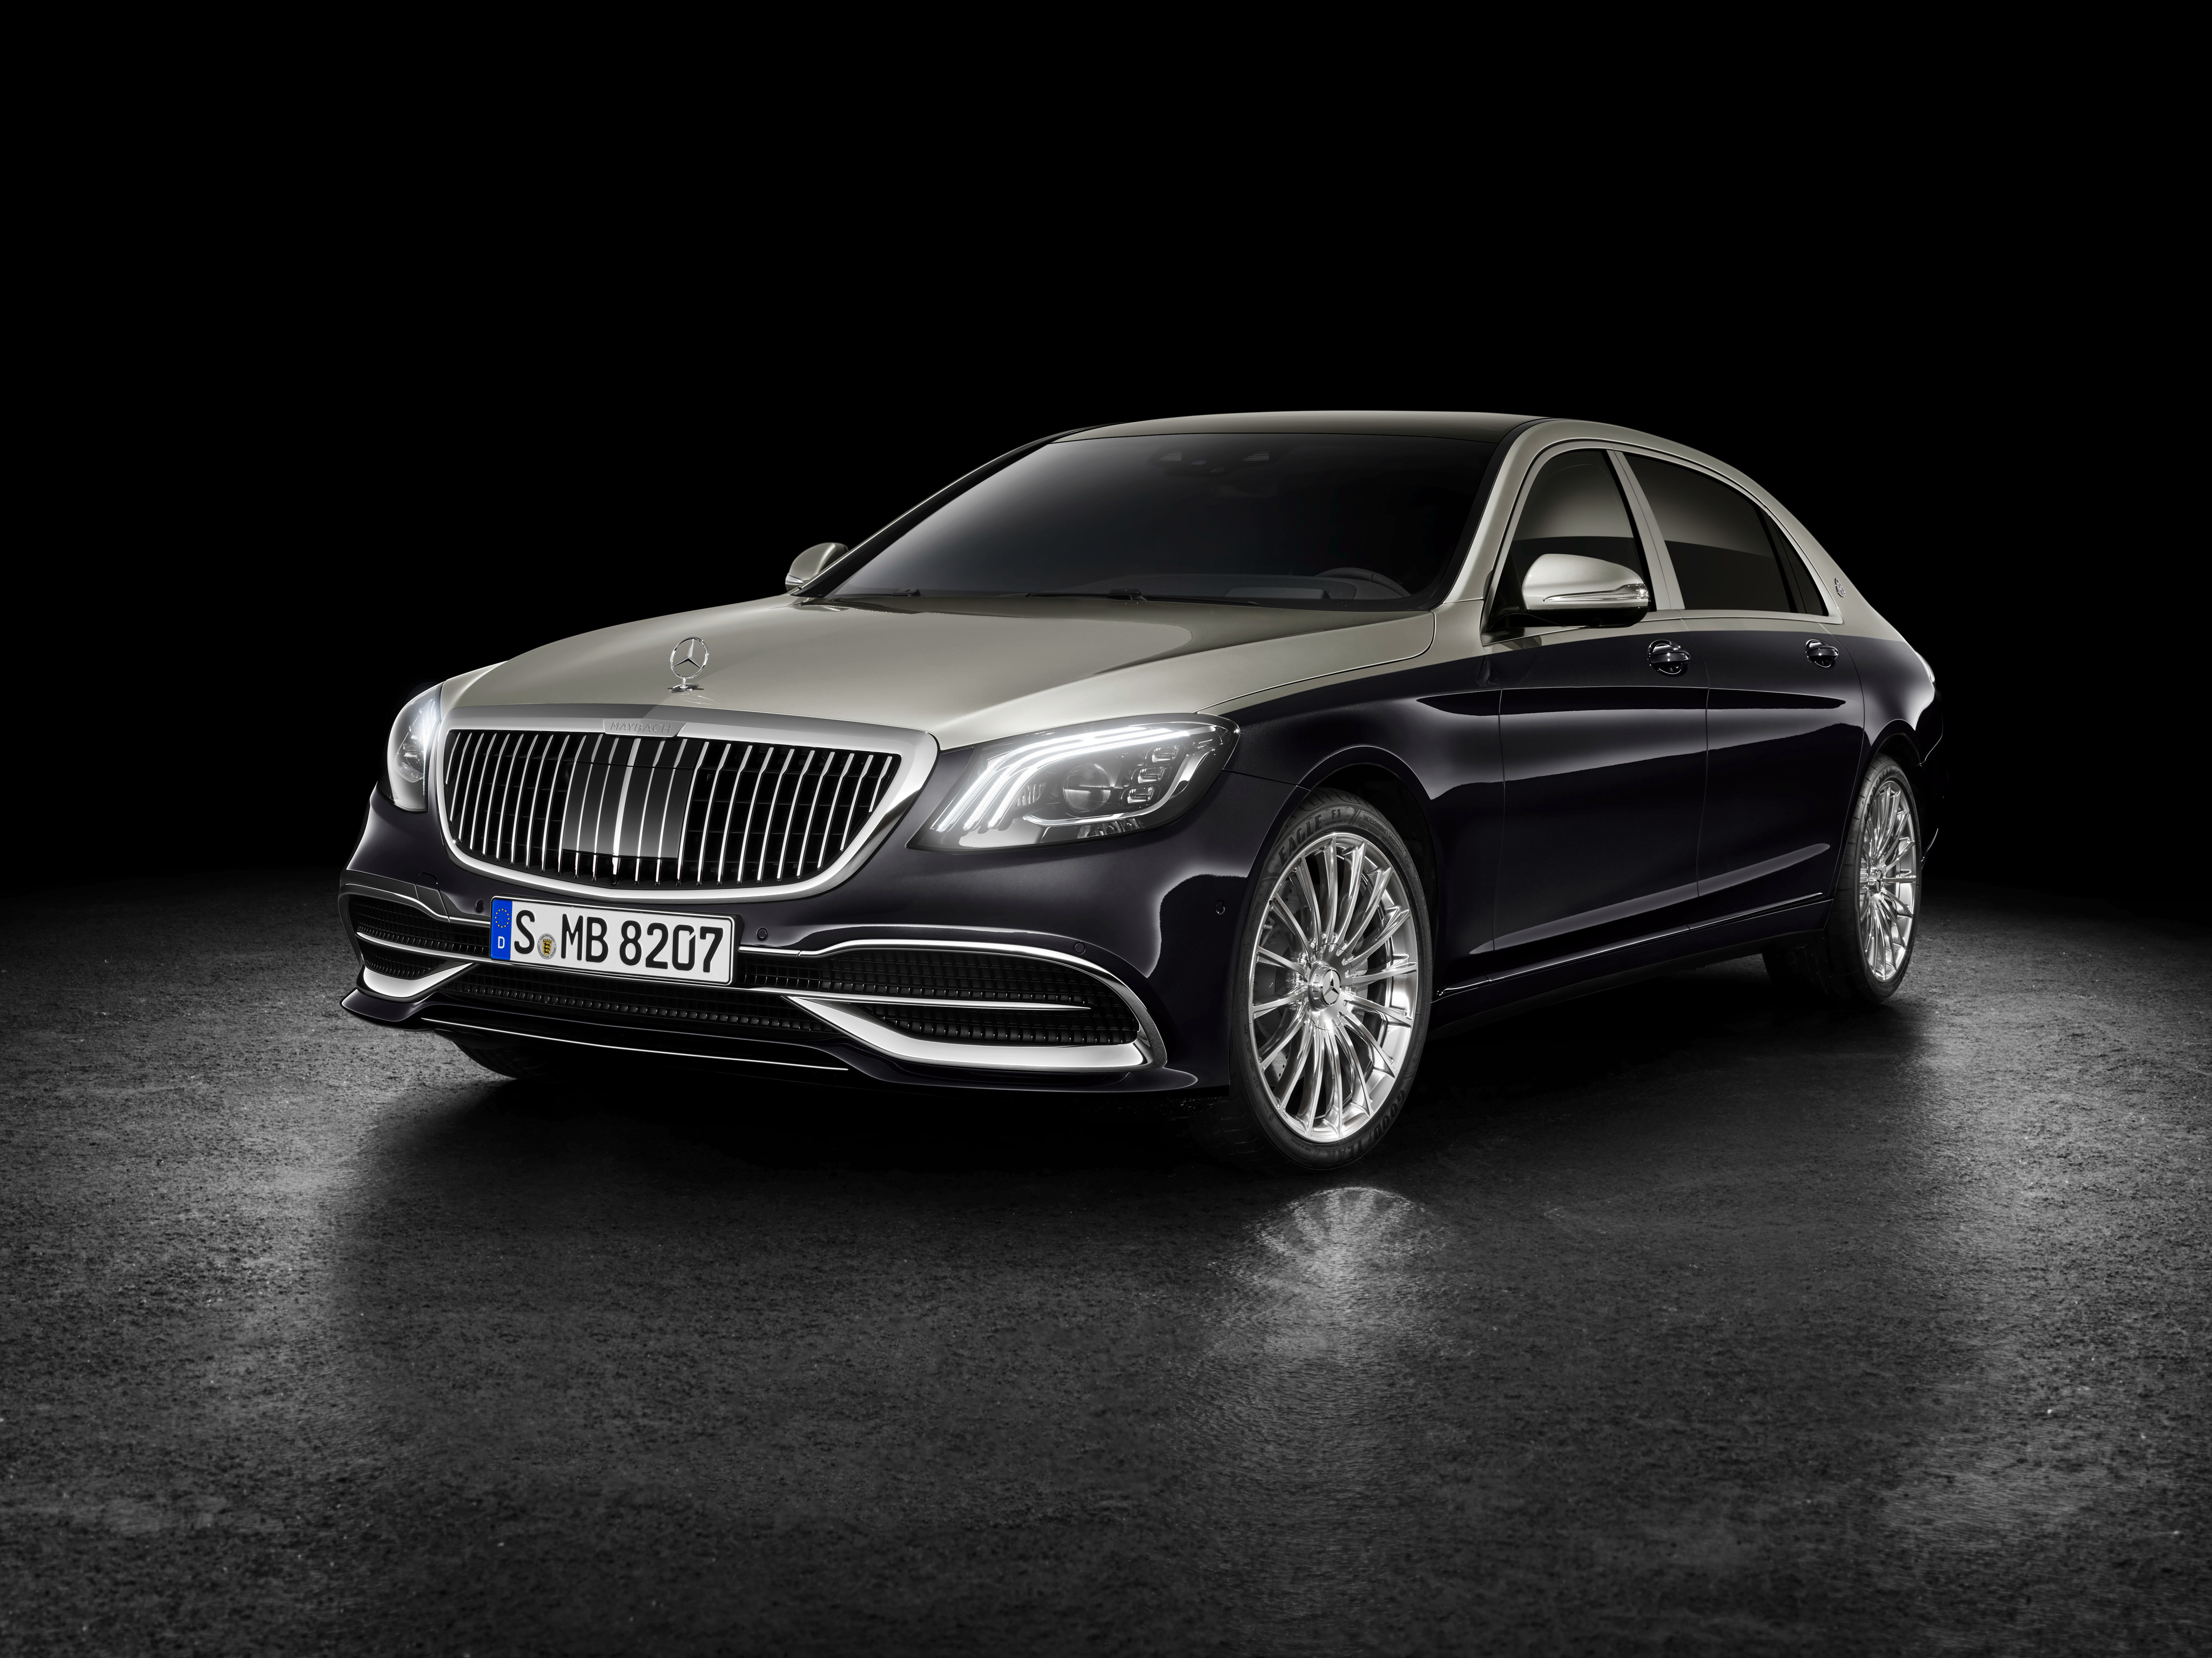 mercedes benz maybach s 560 2018 front, hd cars, 4k wallpapers